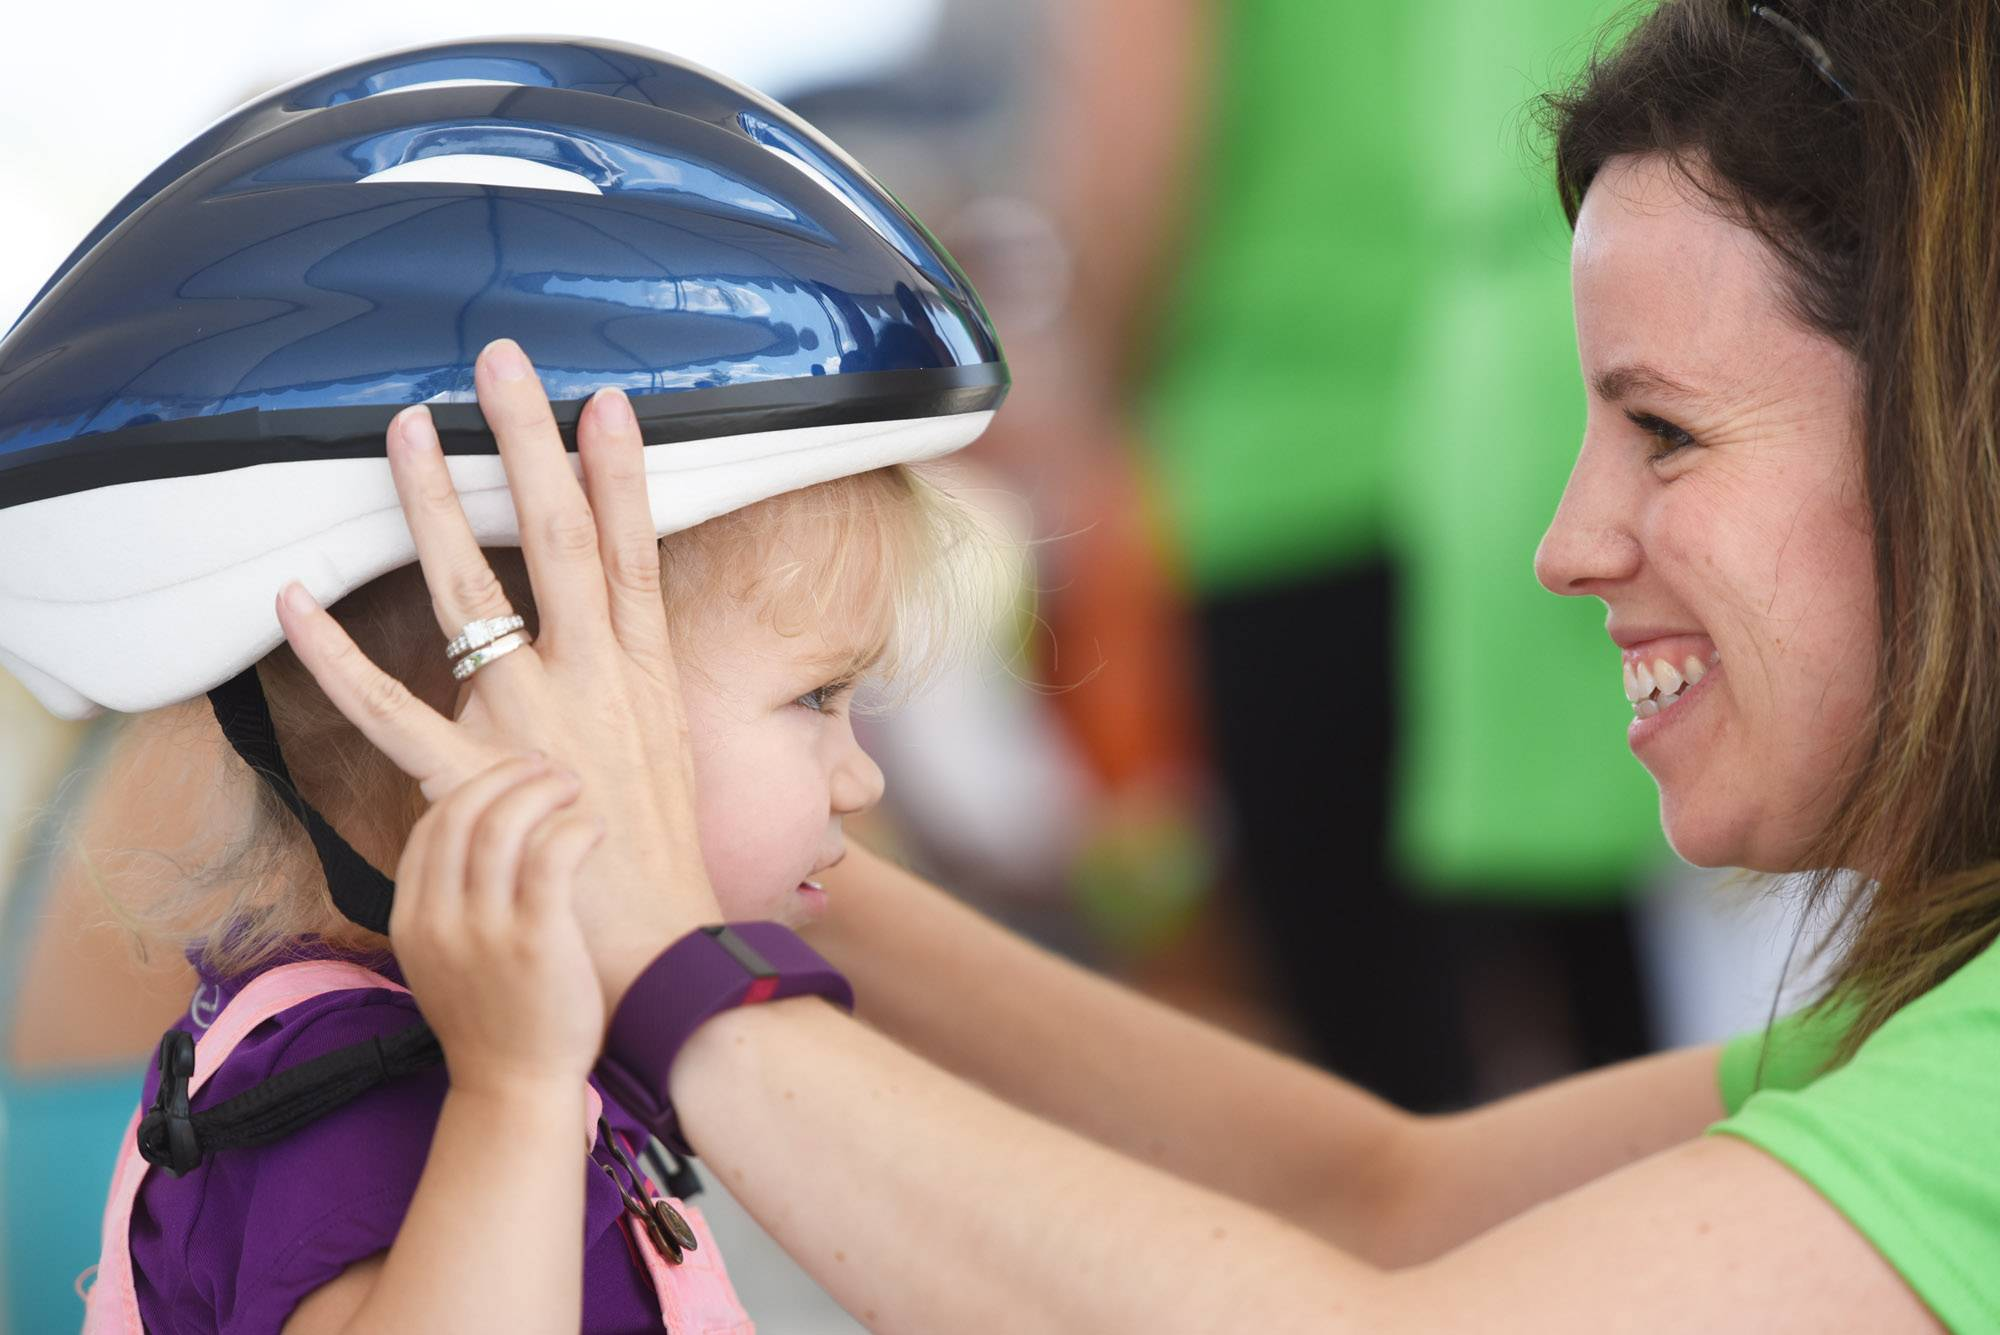 Livianna Hess, 2, has her first bicycle helmet fitted by Meghan Jaske, of Centra Health System at the Centegra Family Health Fest in Huntley Saturday. She was one of 400 children to get a free helmet. Livianna was with her family from Marengo.